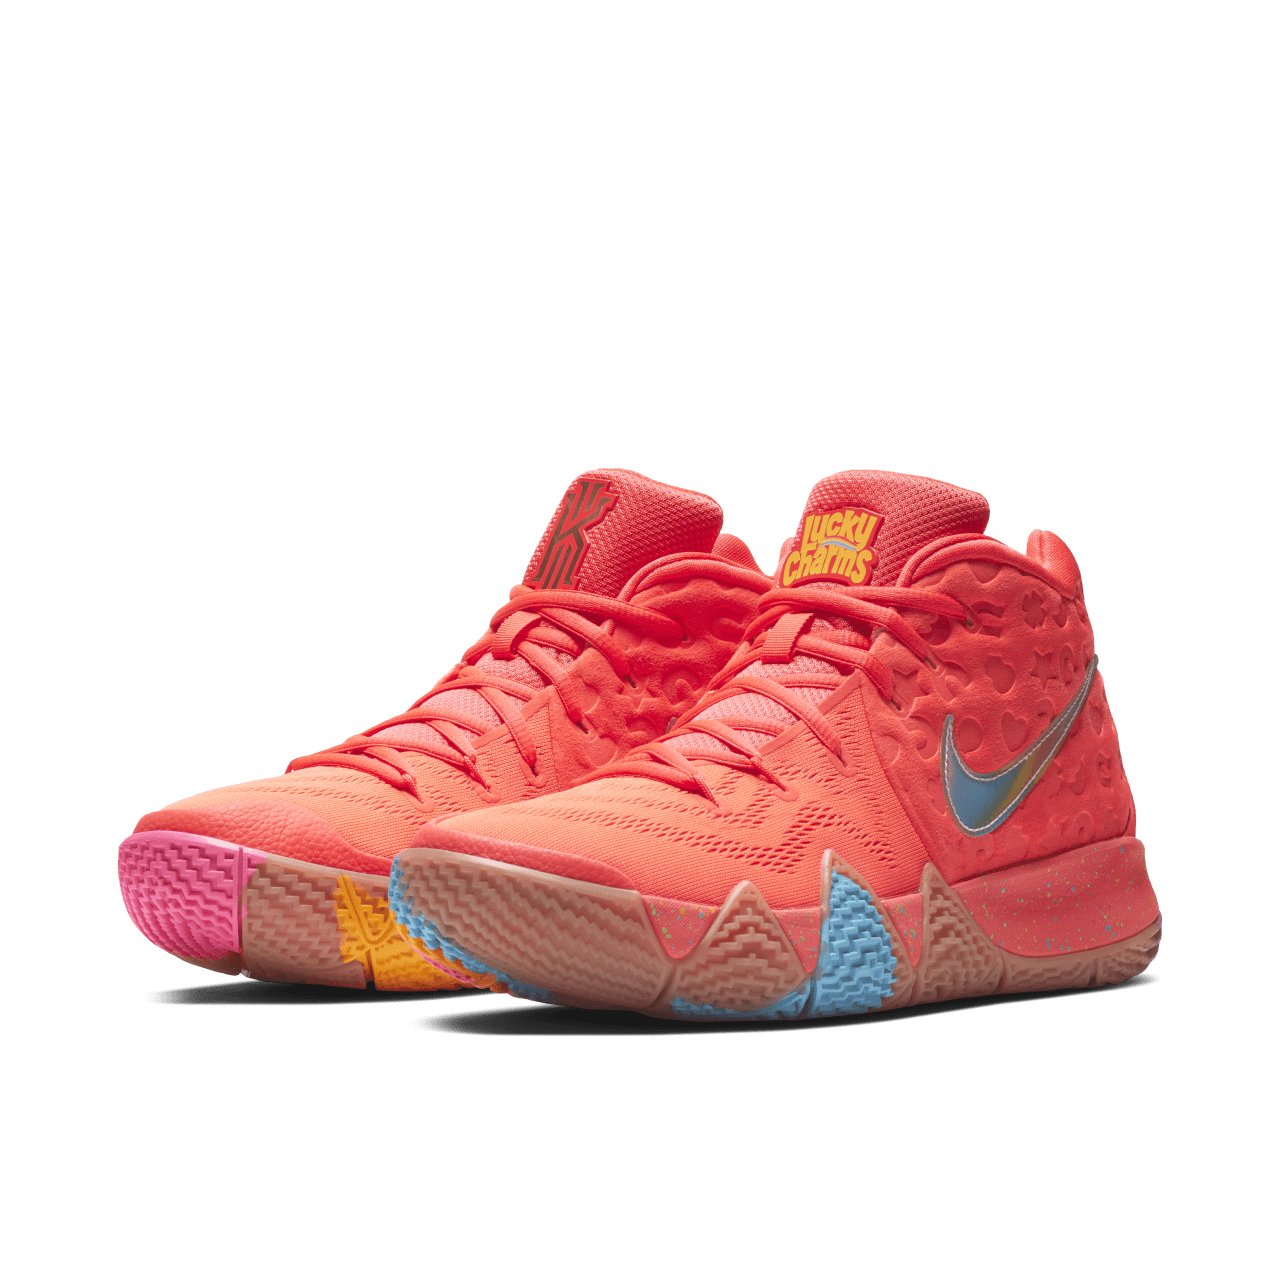 c5d20b7303a6 Nike Kyrie 4 'Lucky Charms' - Nike Kyrie 4 'Cereal Pack' House of Hoops  Early Release Date | Sole Collector